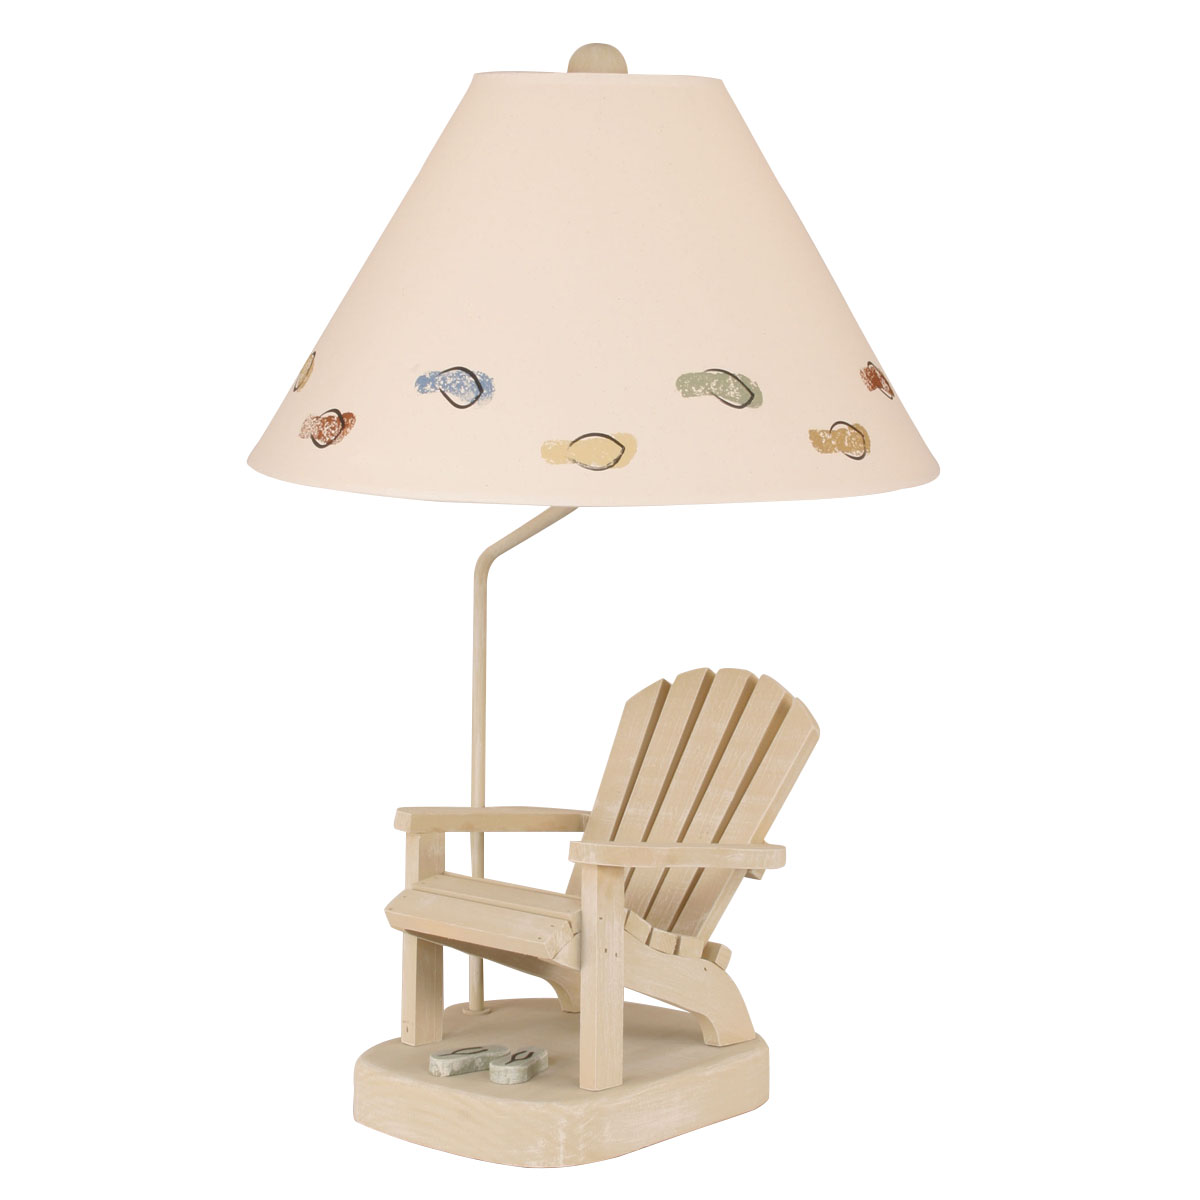 Adirondack Chair Table Lamp with Sage Flip Flops